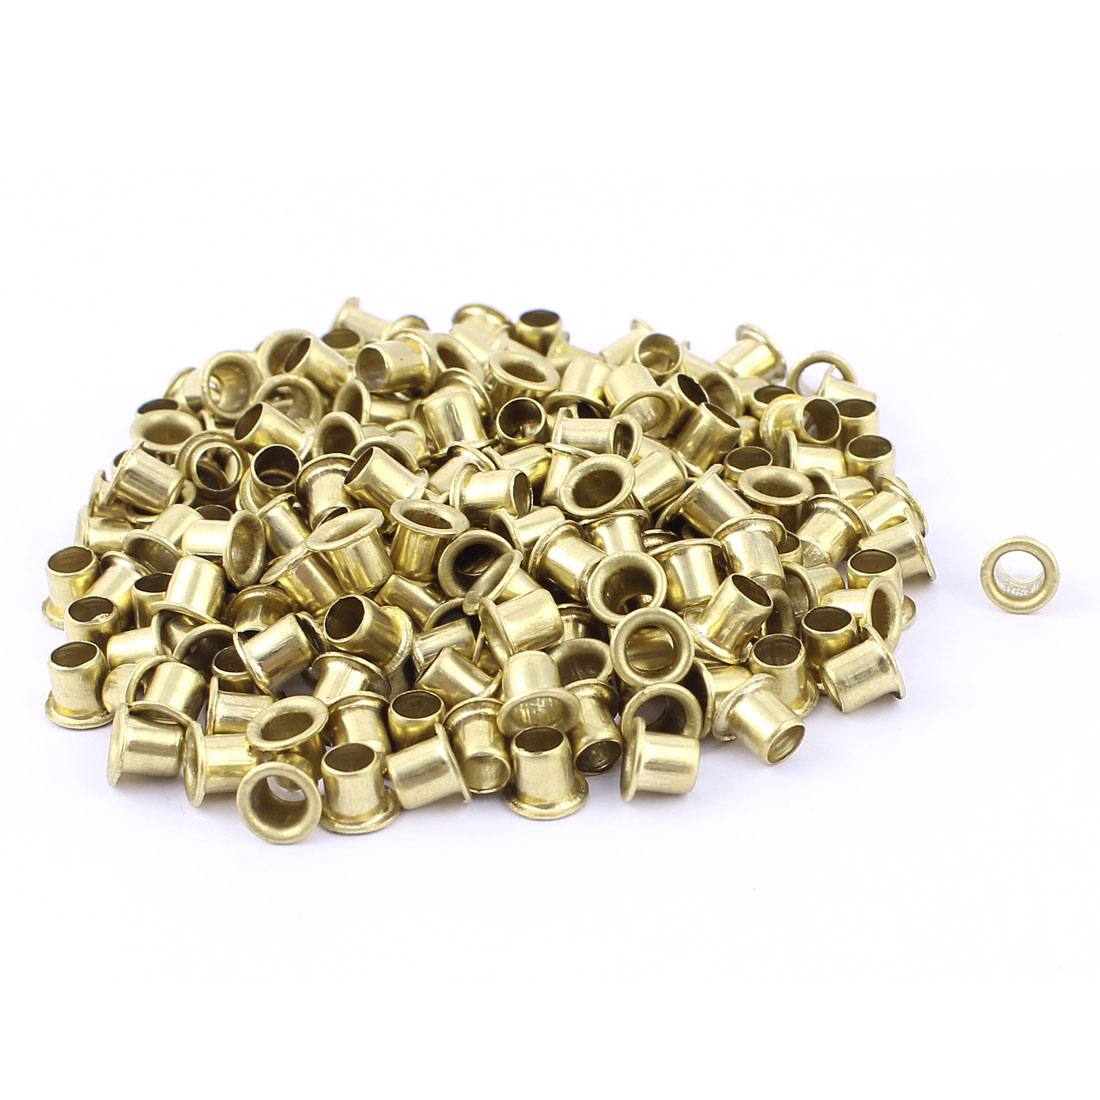 200pcs M5x5 Copper Via Vias Plated Through Hole Rivets Hollow Grommets PCB Circuit Board